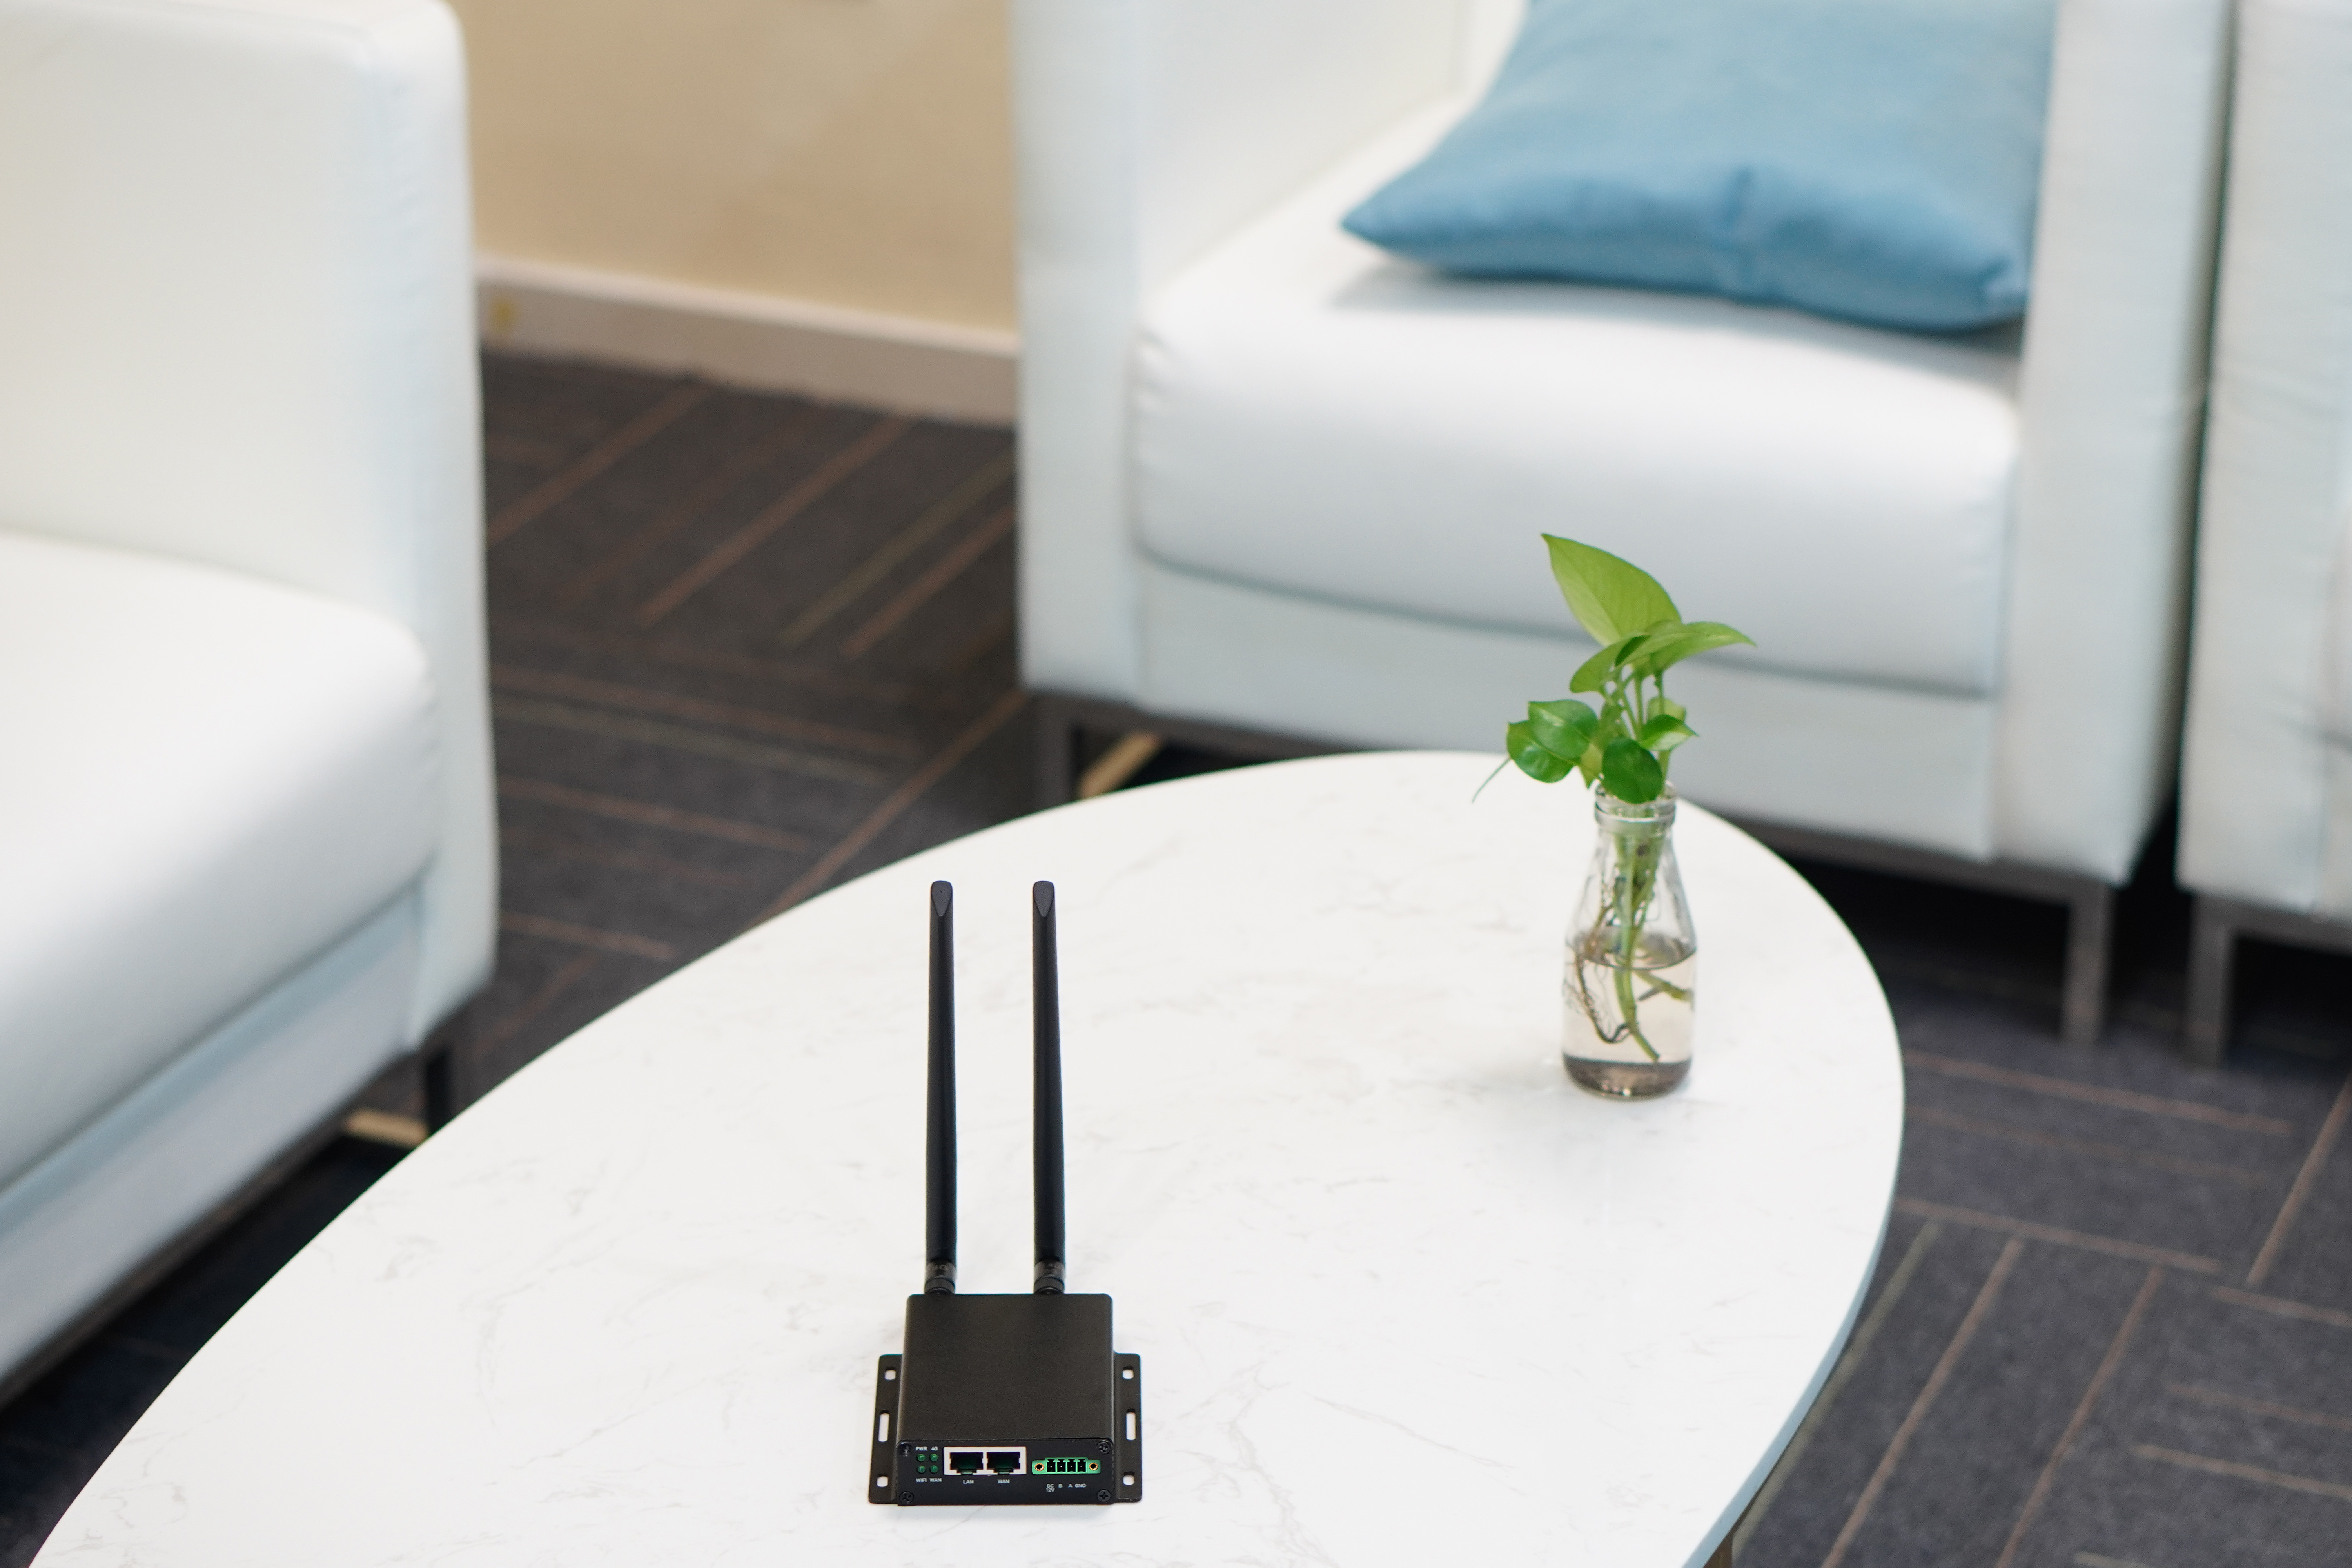 GL.iNet Collie, 4G LTE wireless gateway for small business